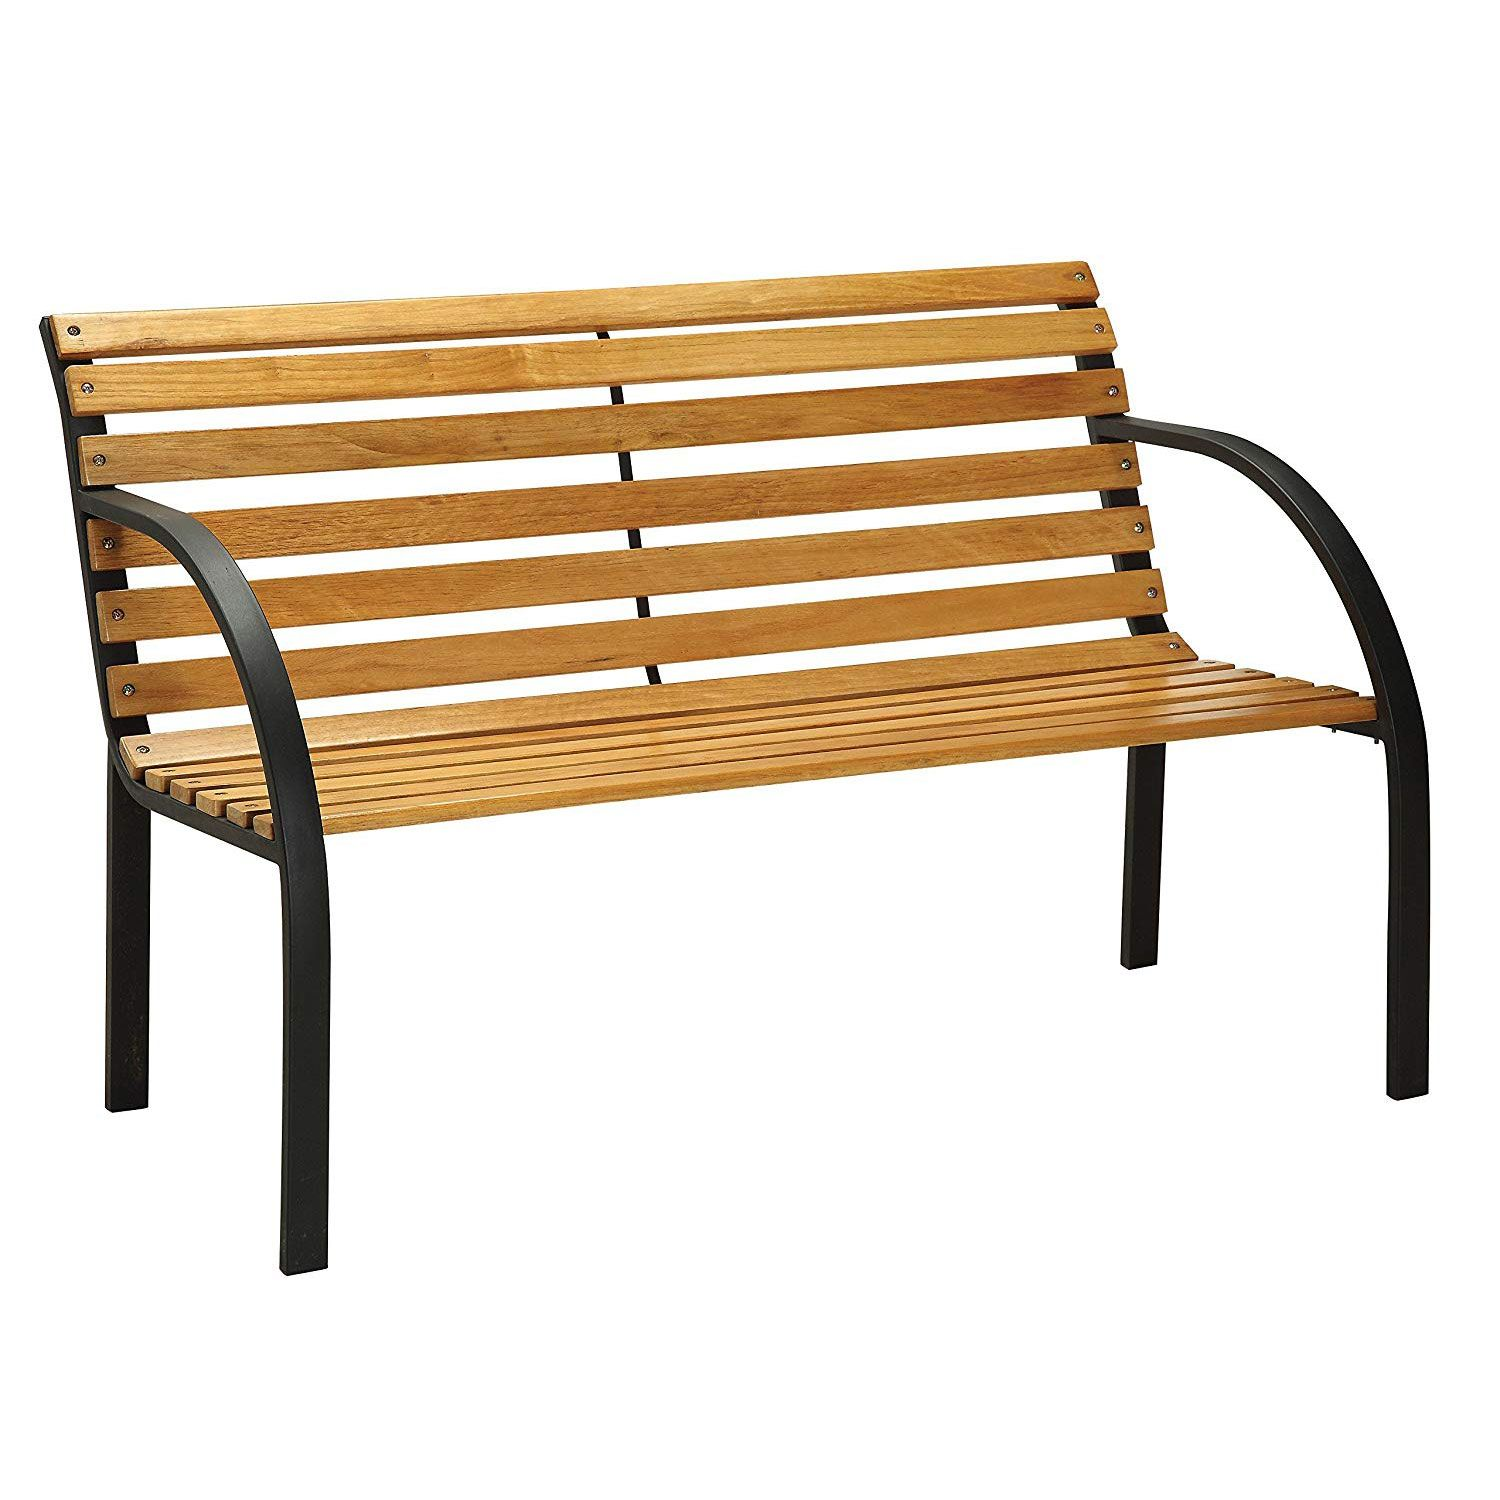 Patio Garden In 2020 Patio Bench Curved Wood Furniture